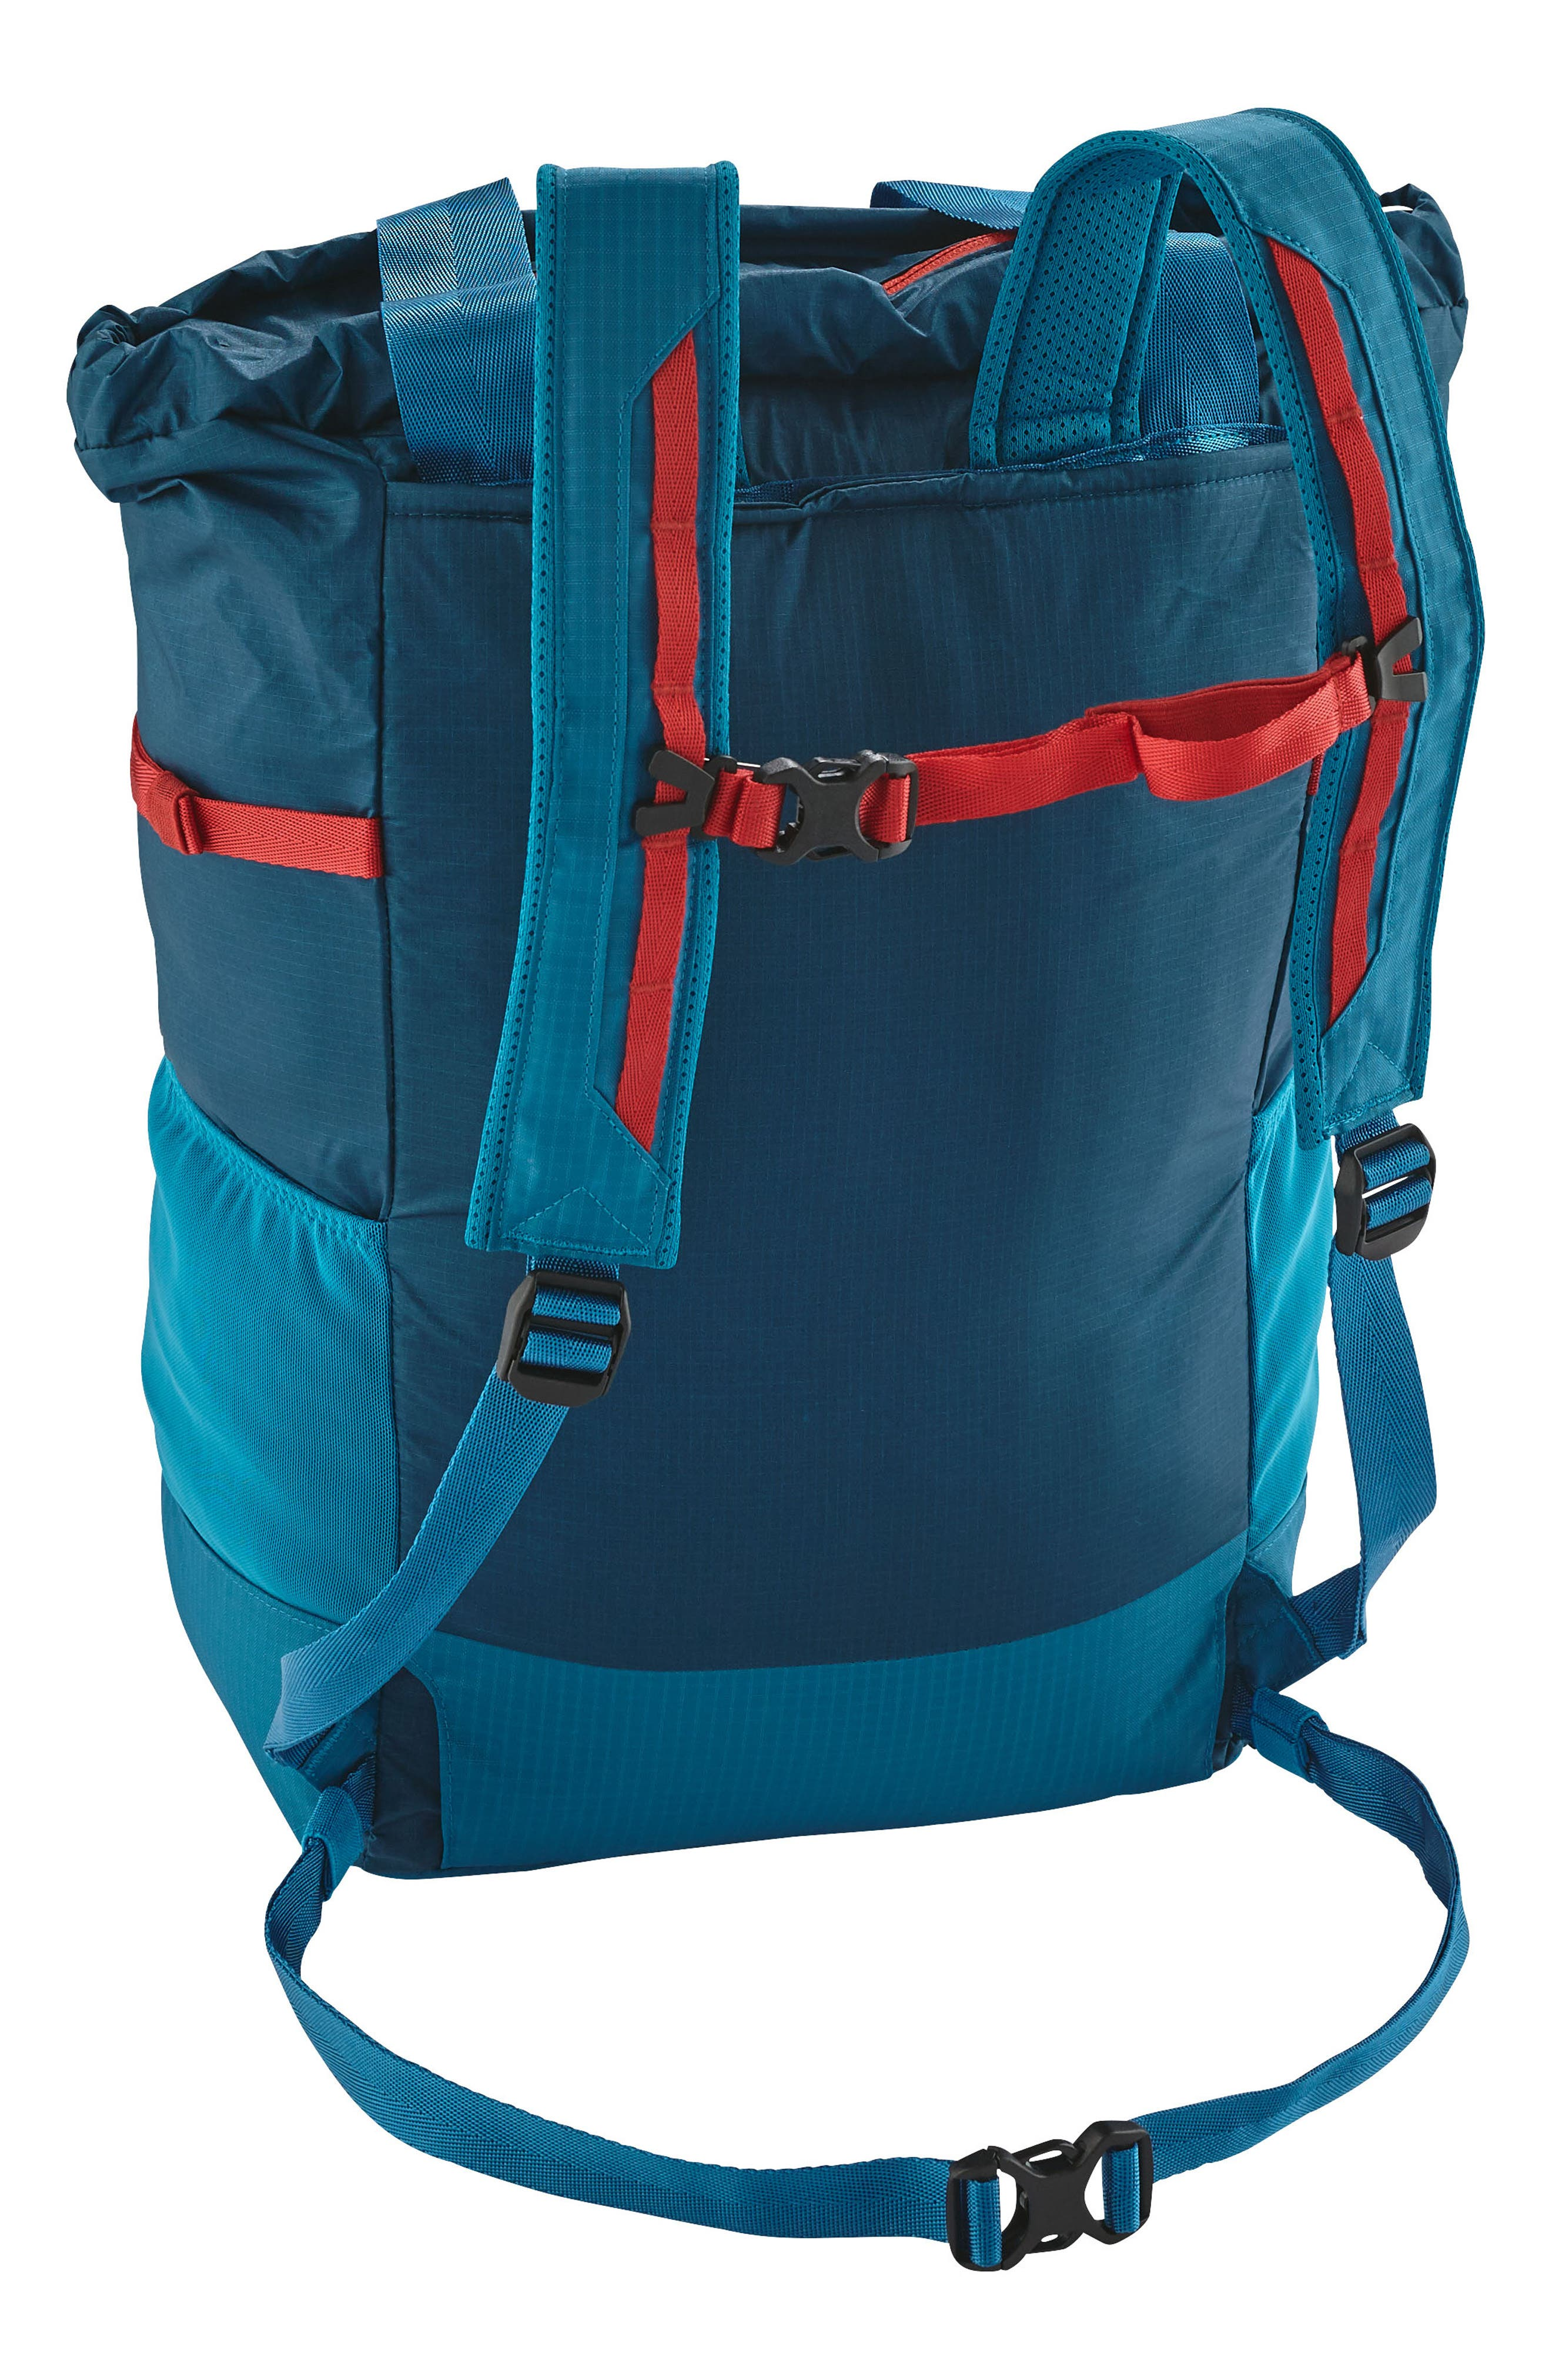 Tote Backpack,                             Alternate thumbnail 2, color,                             407